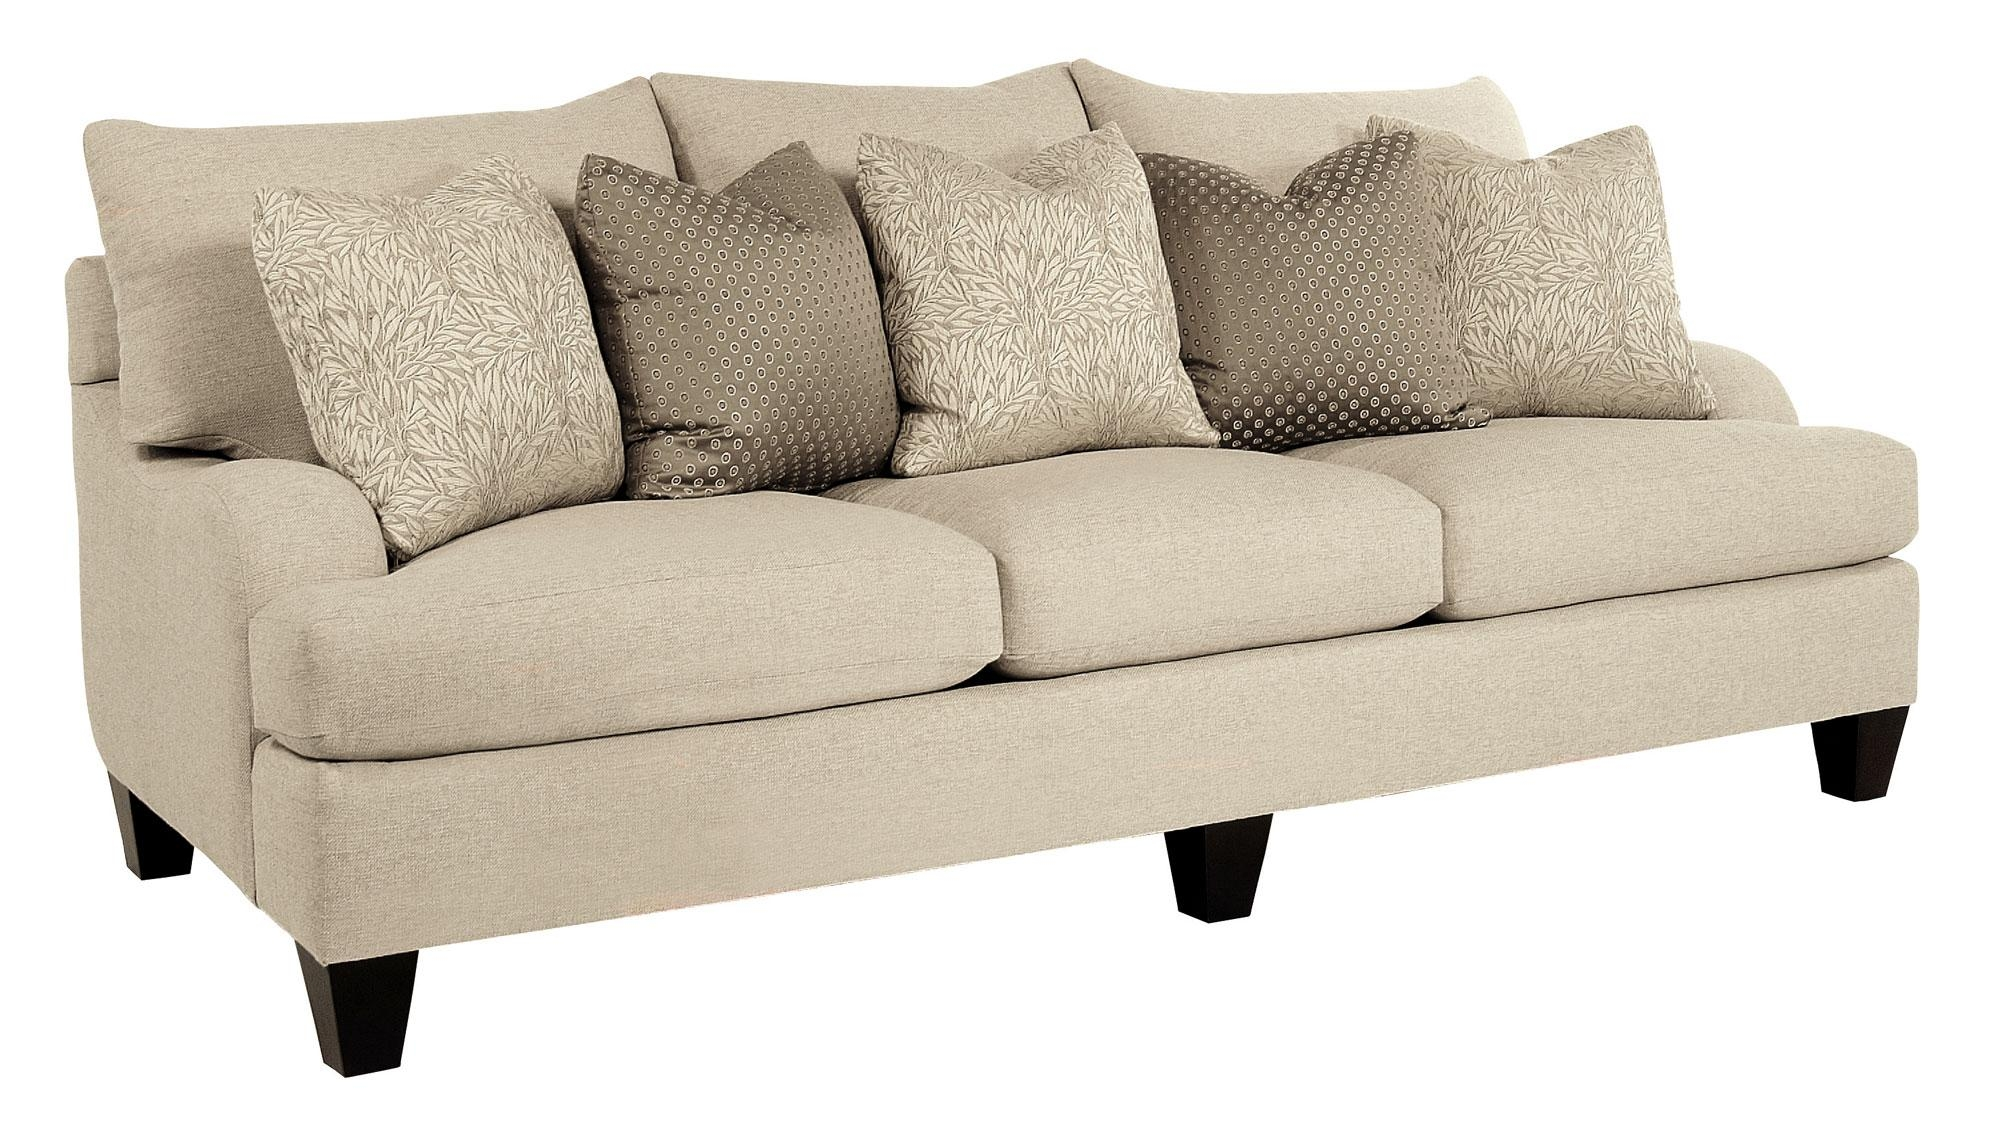 All Items | Bernhardt With Bernhardt Brae Sofas (Image 2 of 20)